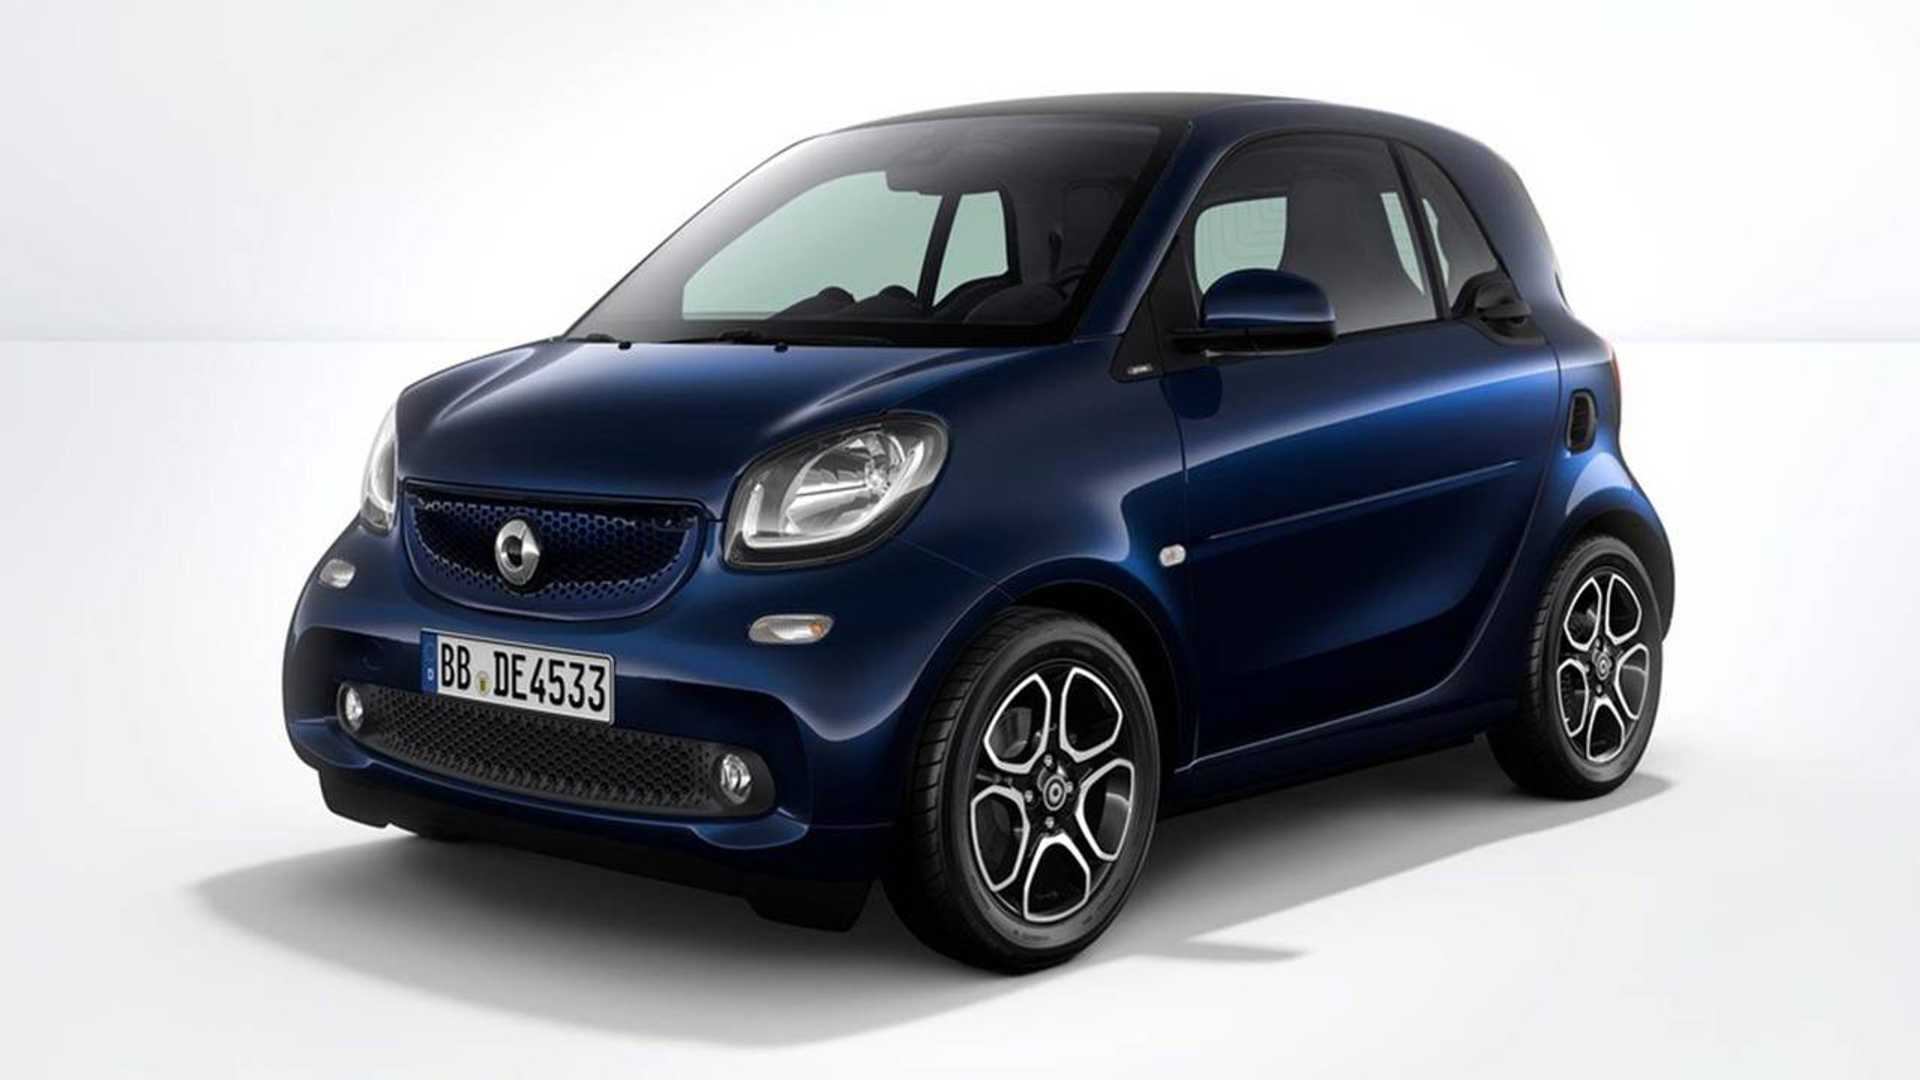 64 New 2020 Smart Fortwo Pictures